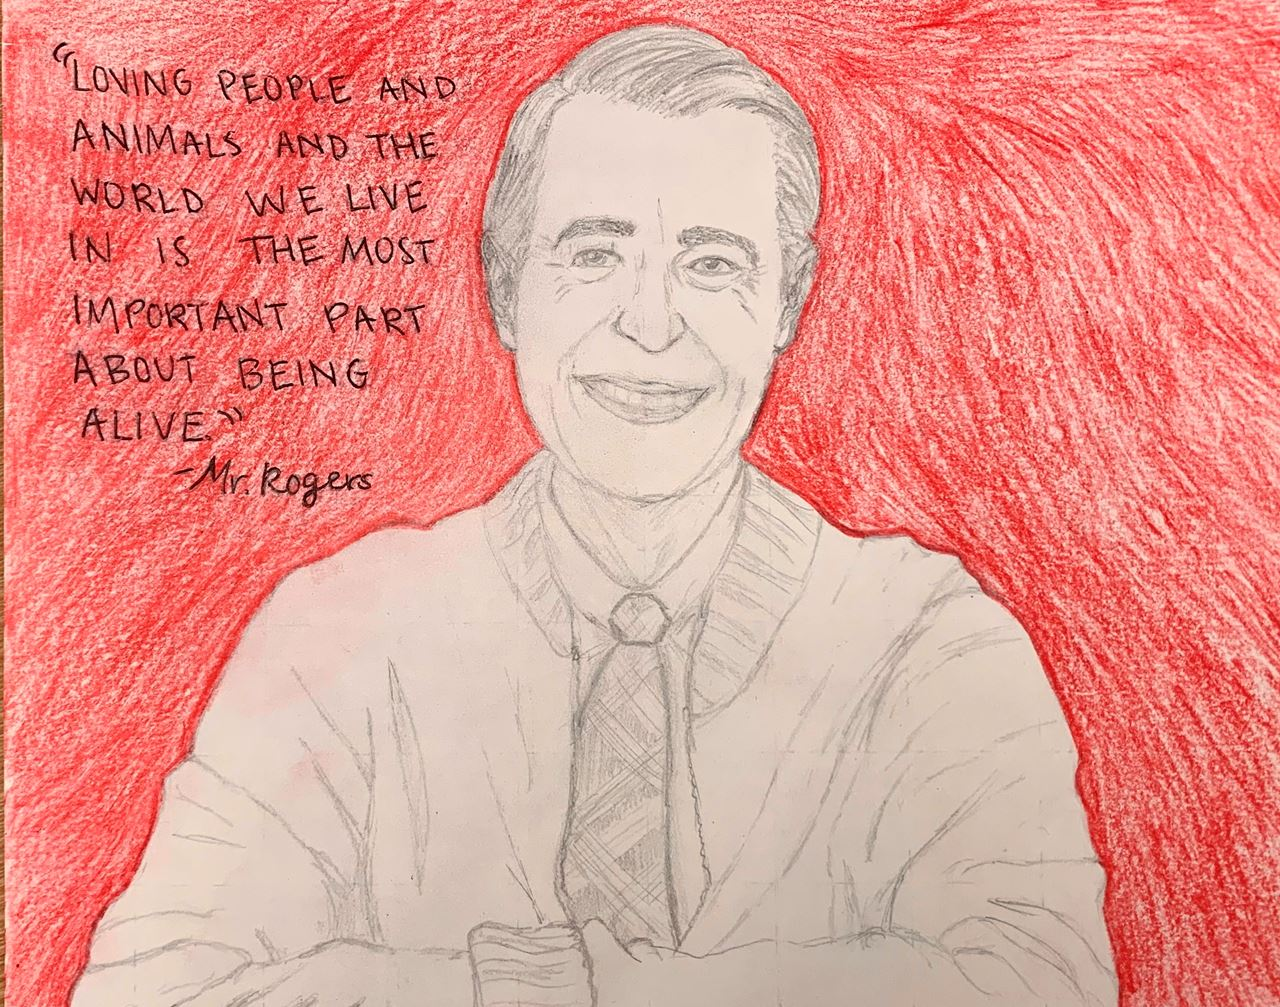 Picture of Mister Rogers  by Olivia D from Liberty, Missouri